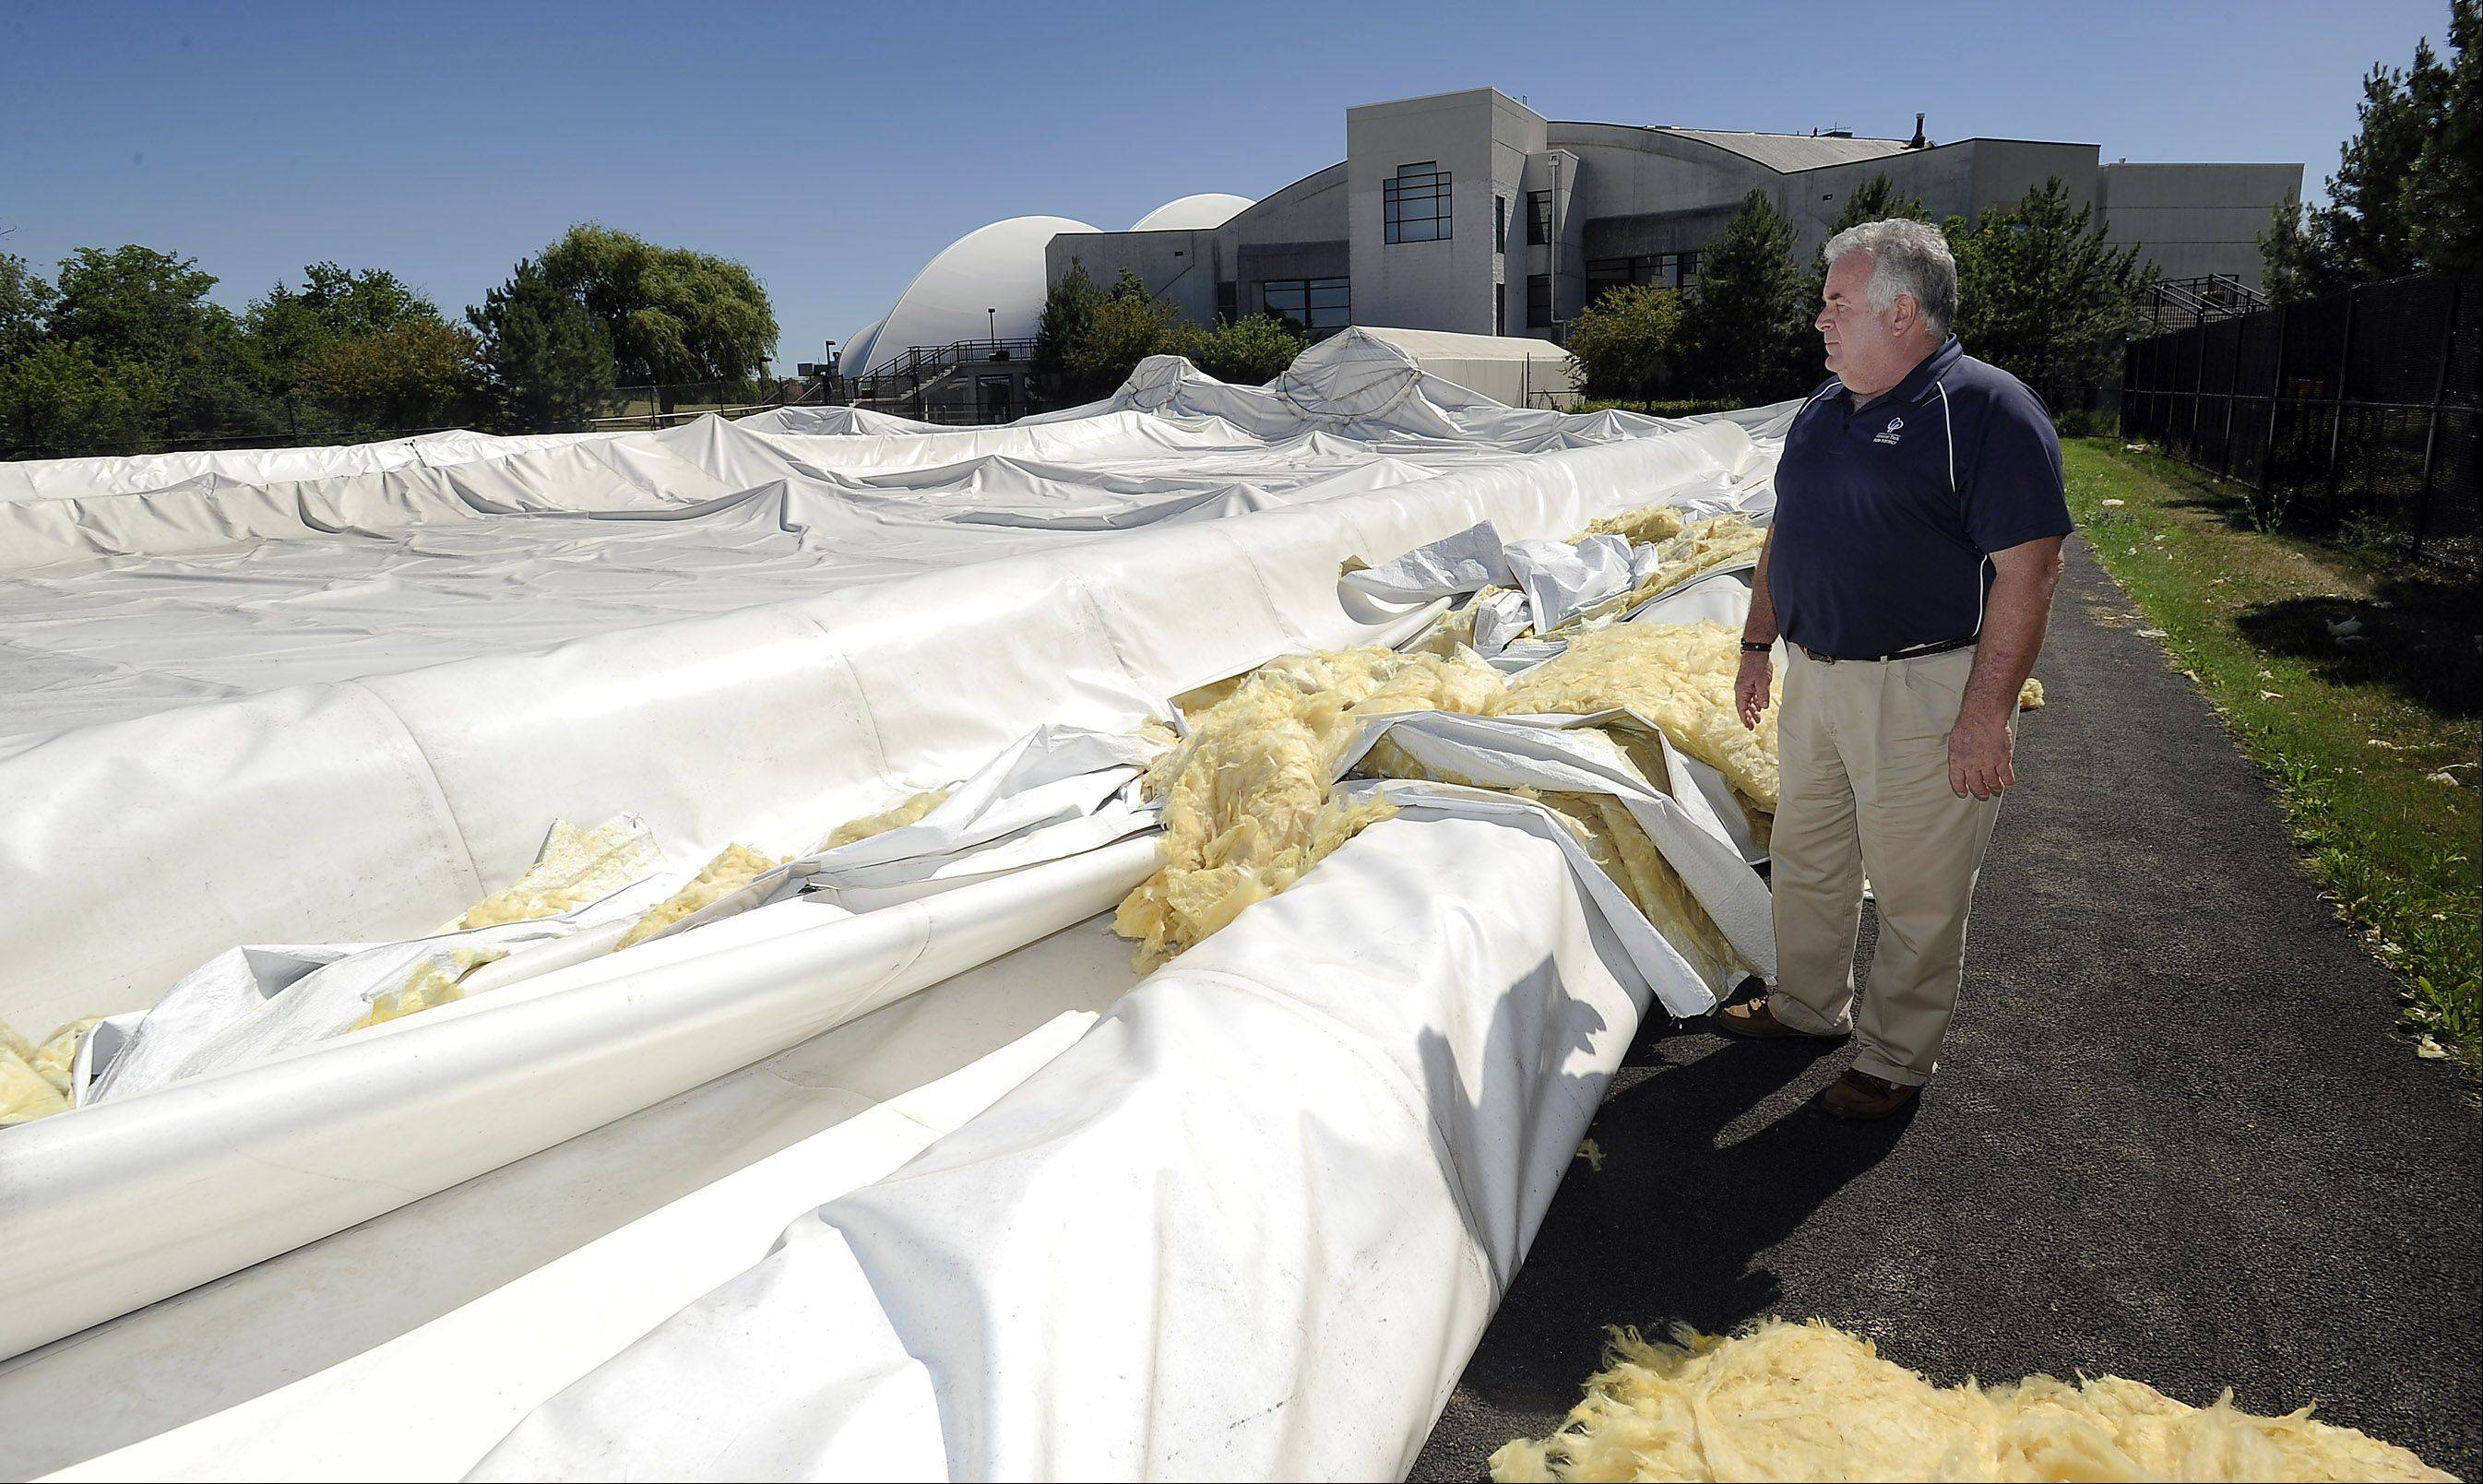 Bob O�Brien, the Hanover Park Park District superintendent of parks, surveys the inflatable tennis dome after it collapsed in June 2012. District officials recently agreed to issue $500,000 in bonds for a replacement dome.